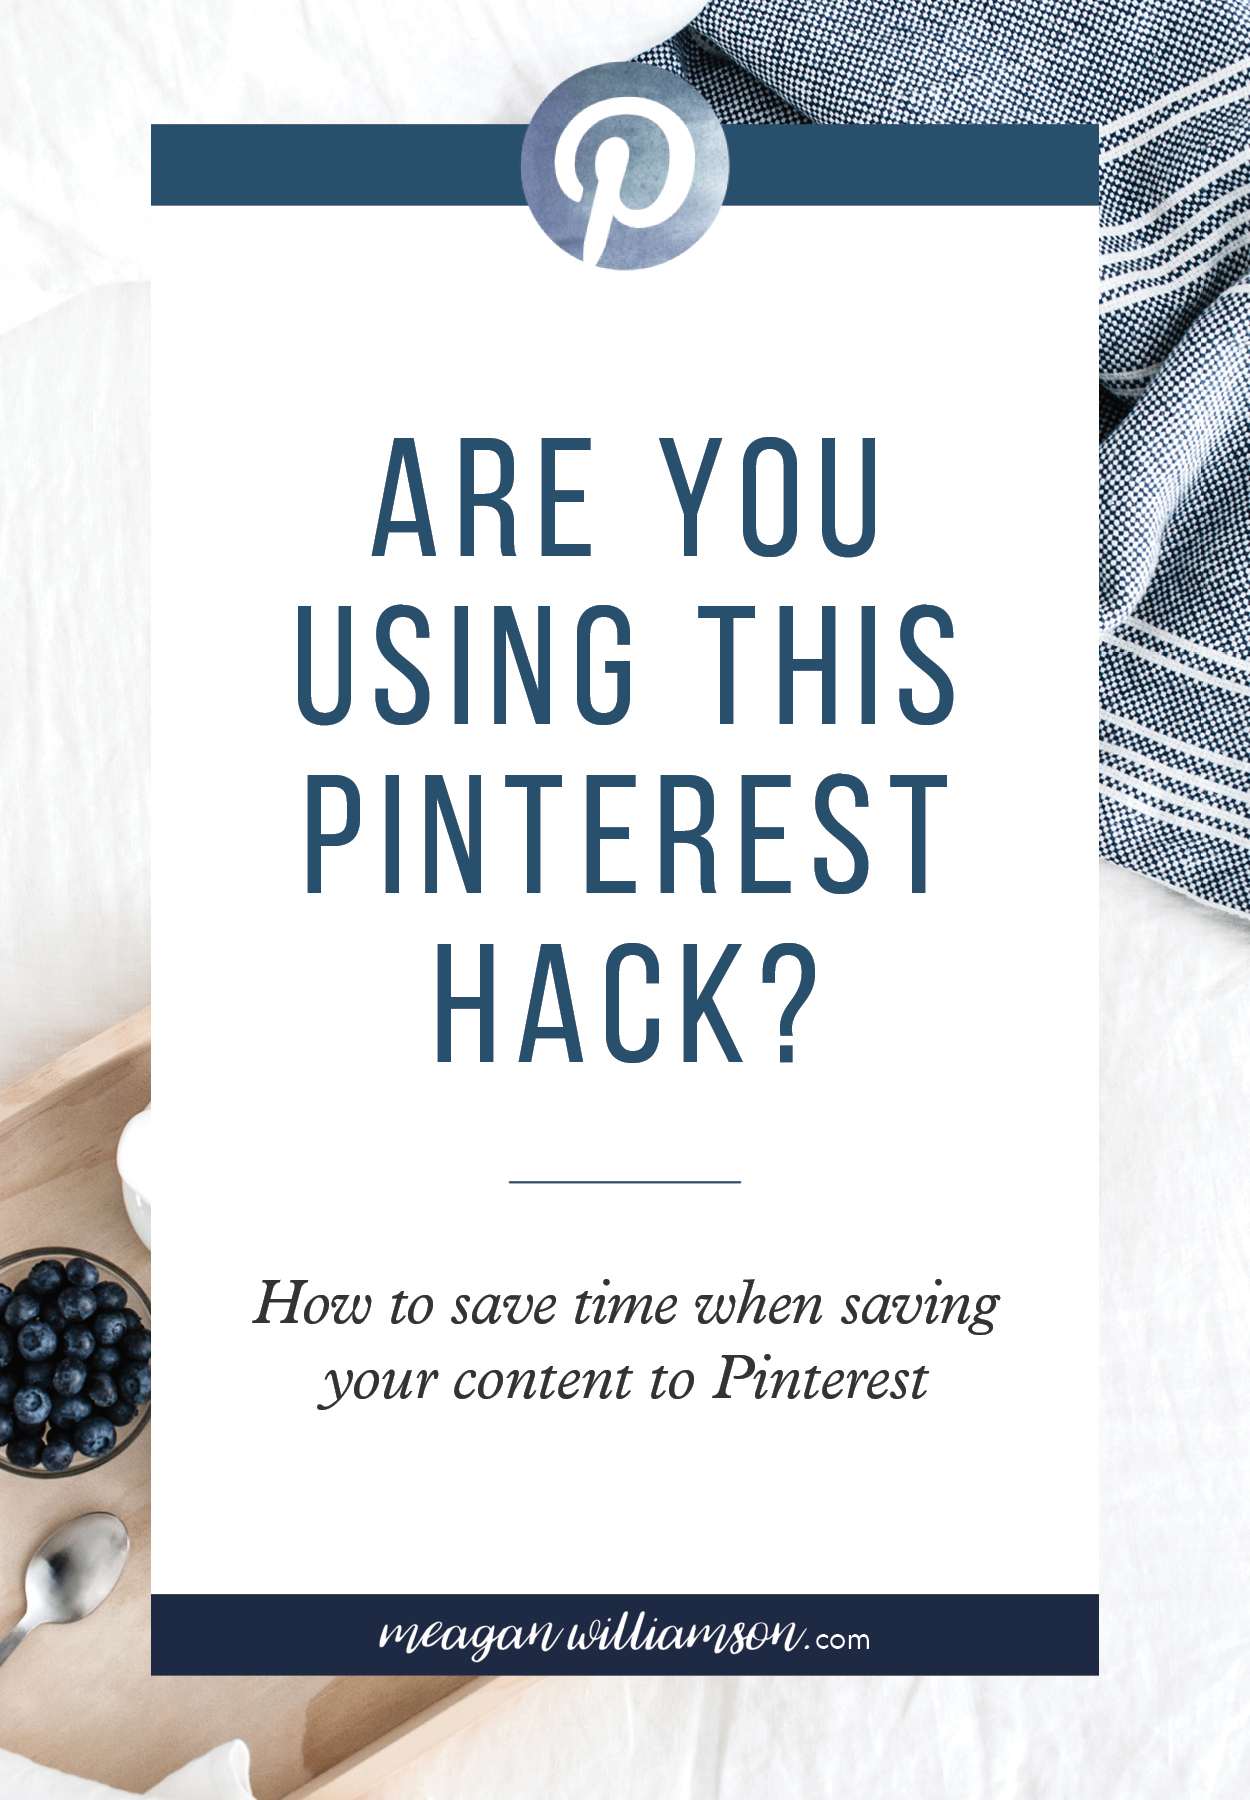 Text Image: Are you using this Pinterest hack? How to save time when saving your content to Pinterest.